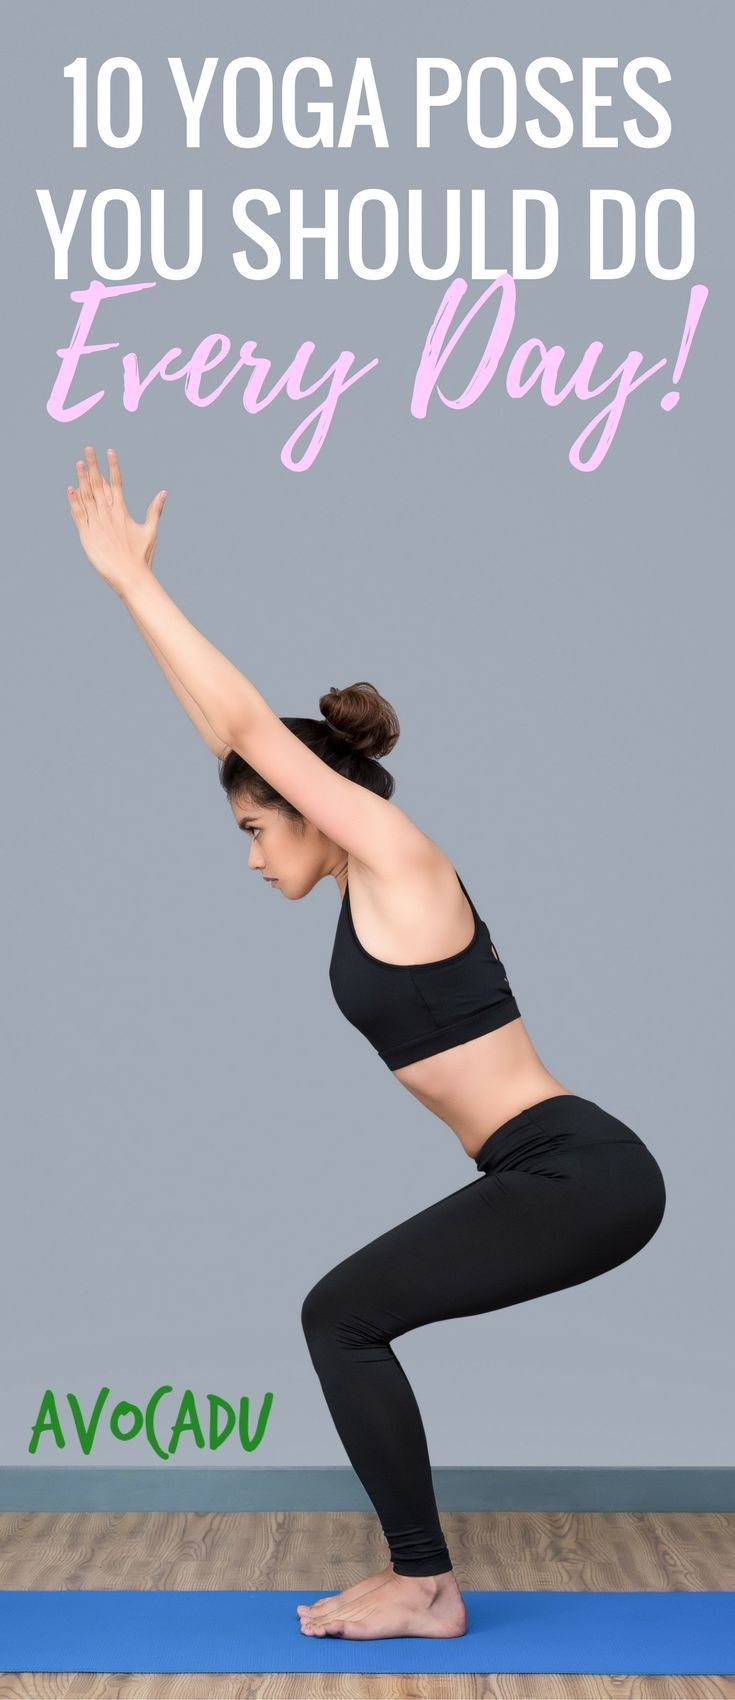 10 Yoga poses you should do every day to get flexible, relieve aches and pains, and lose weight with yoga | Great yoga for beginners at #yogaforbeginners #yogaworkout #yogaposes